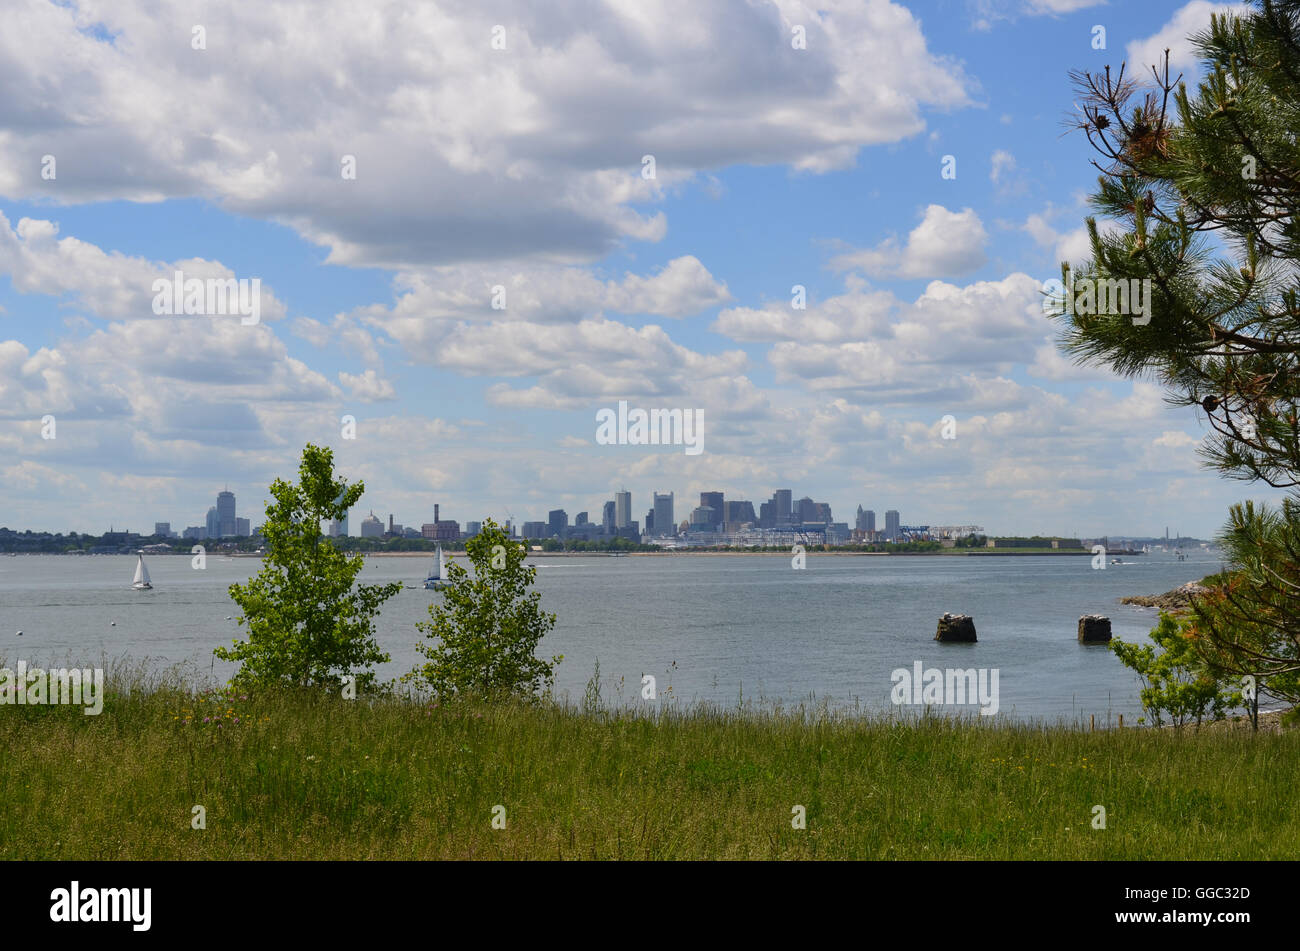 Gorgeous views of the City of Boston from the harbor islands. - Stock Image